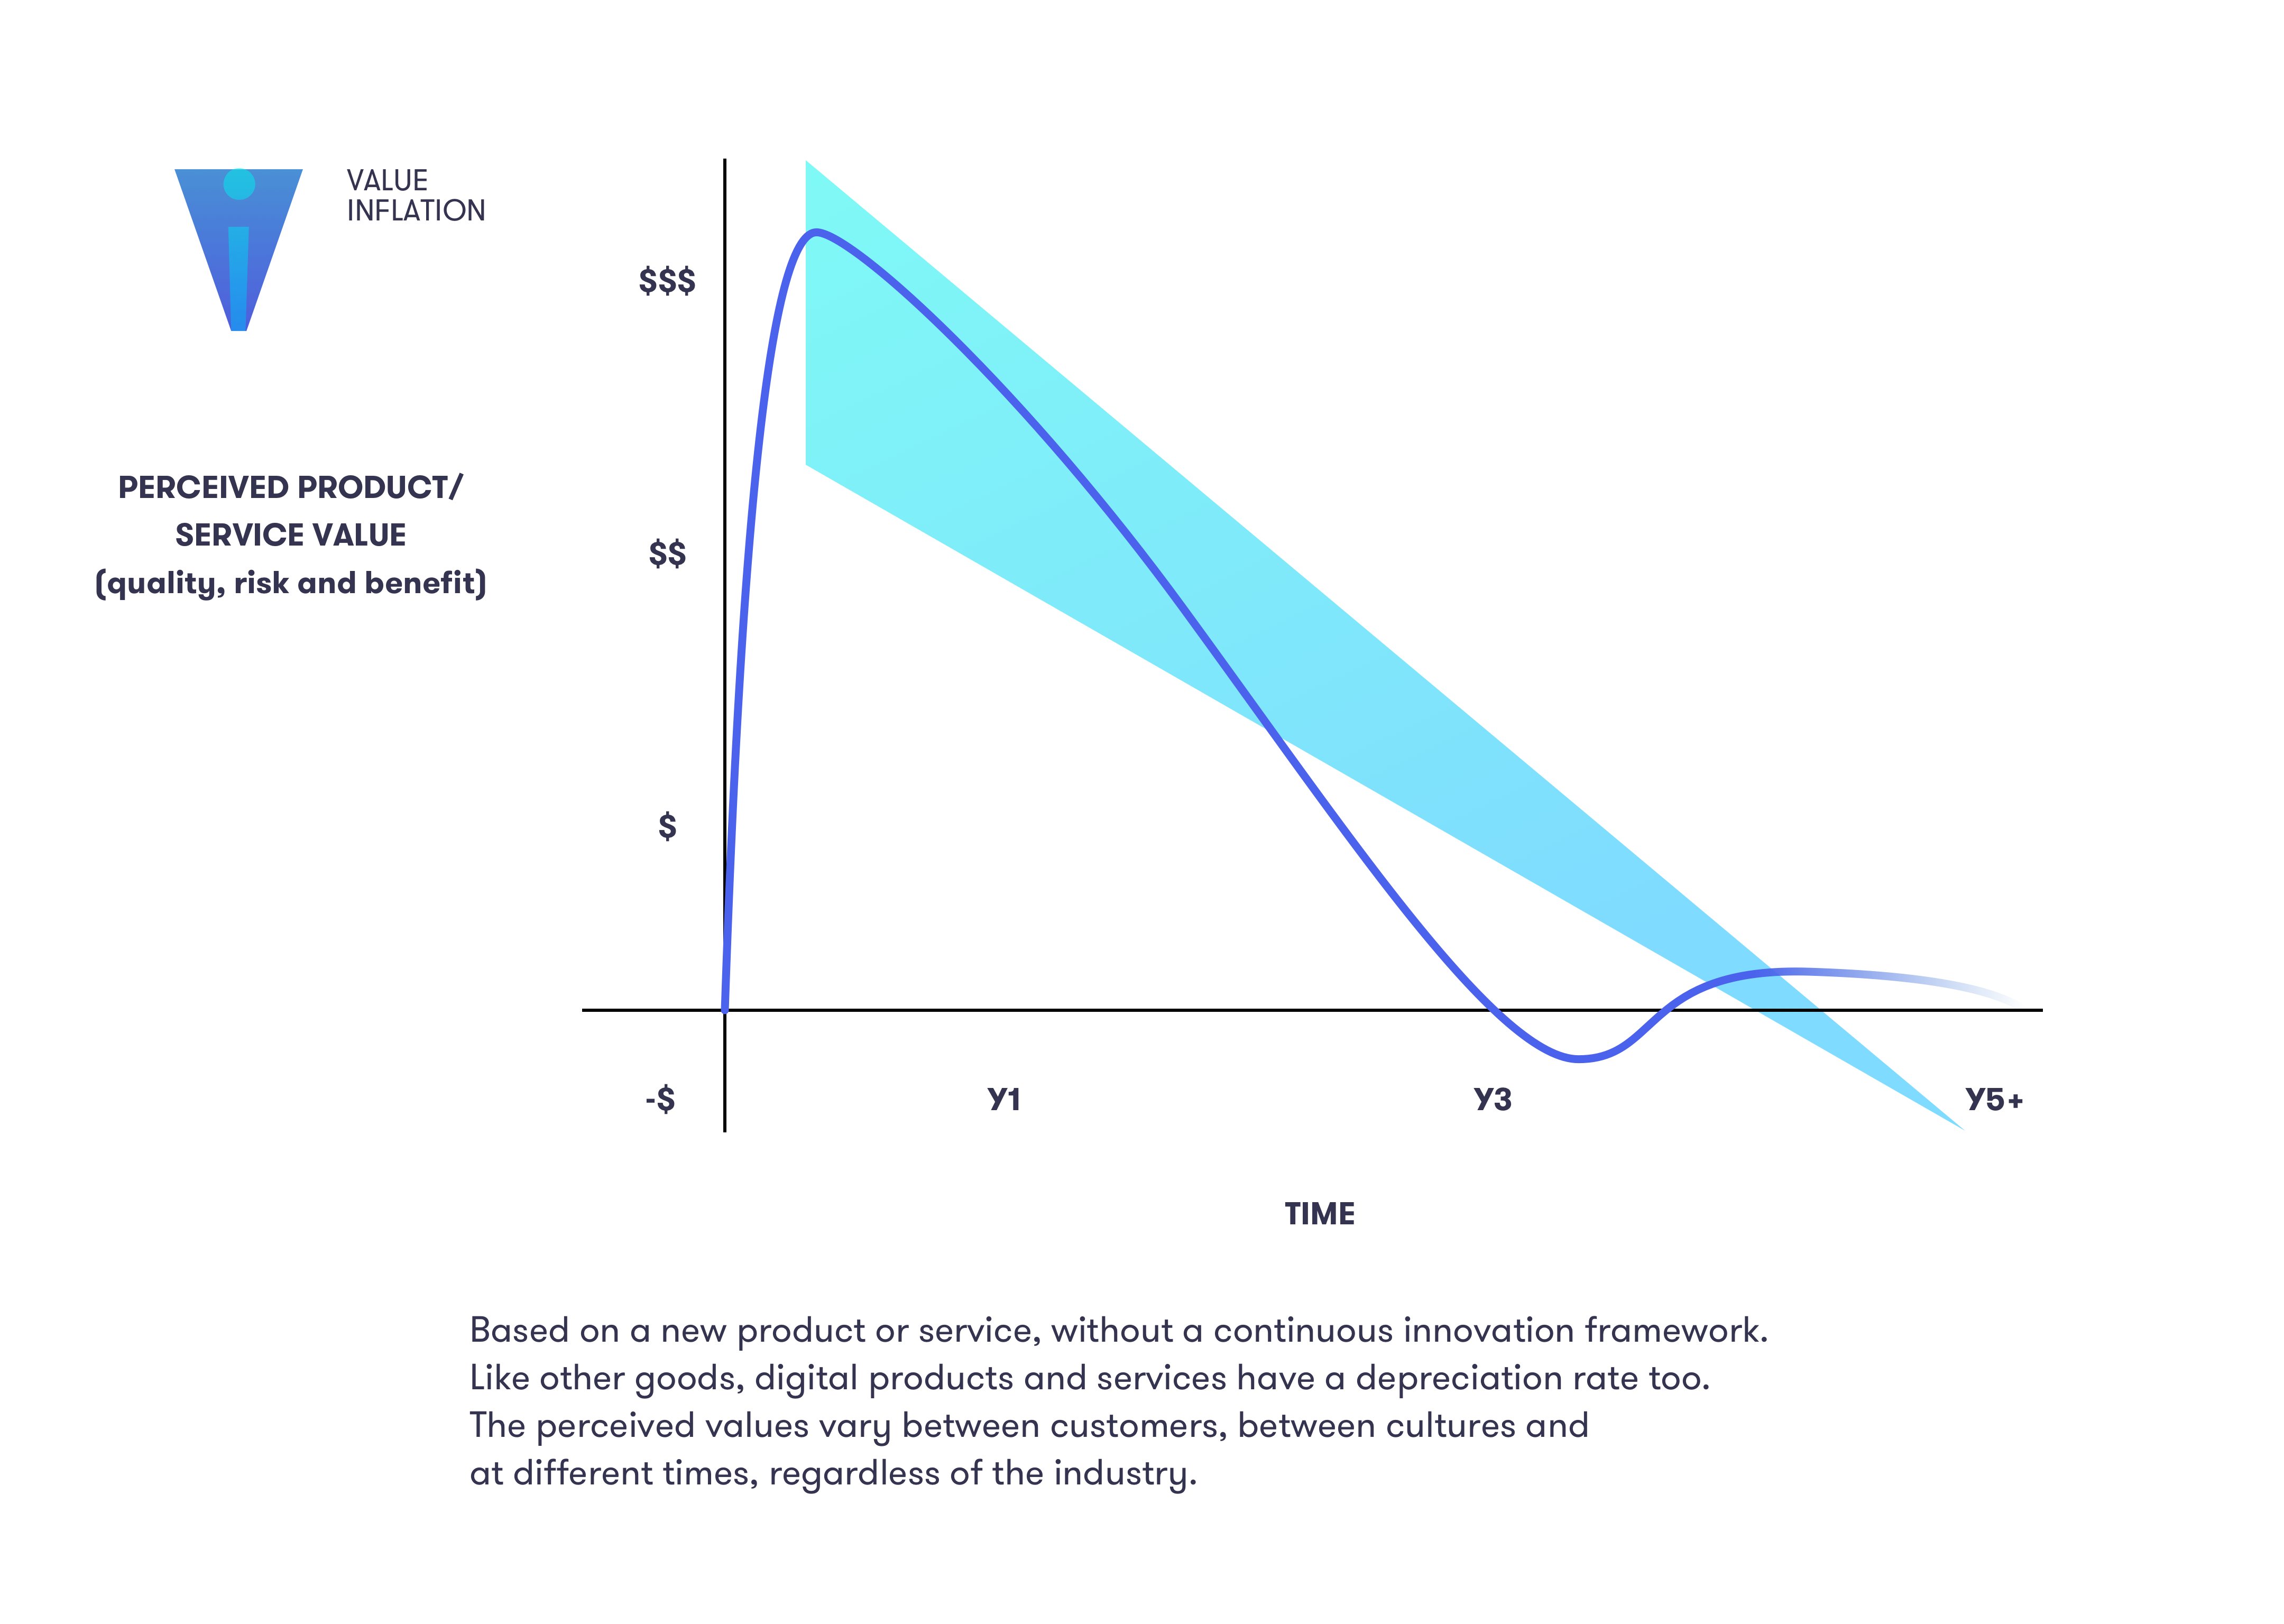 PERCEIVED PRODUCT/ SERVICE VALUE (quality, risk and benefit) over time. Based on a new product or service, without a continuous innovation framework. Like other goods, digital products and services have a depreciation rate too. The perceived values vary between customers, between cultures and at different times, regardless of the industry.